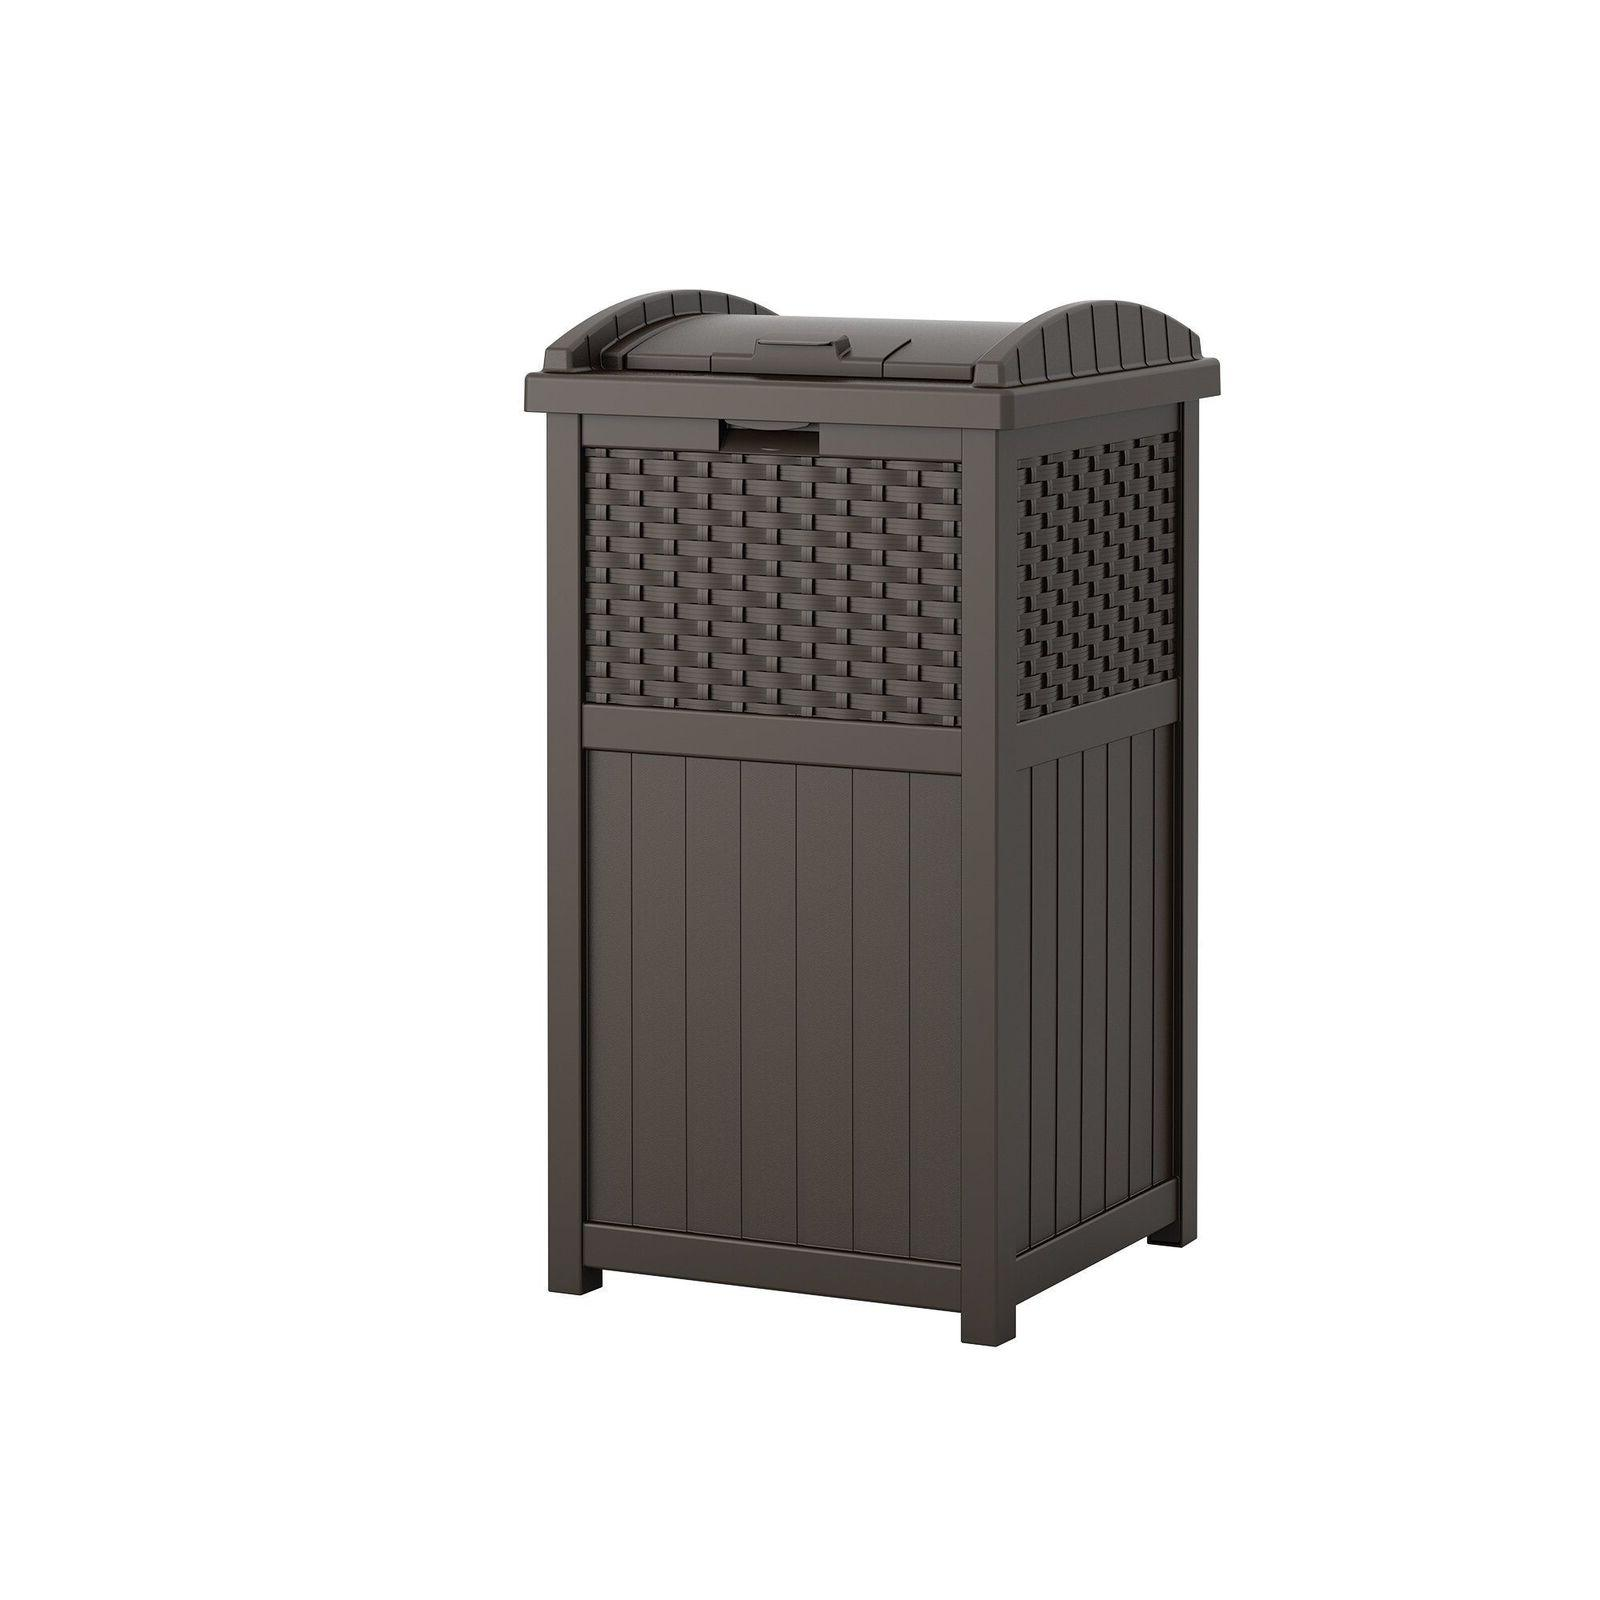 Trash Bin Storage Containers Outdoor